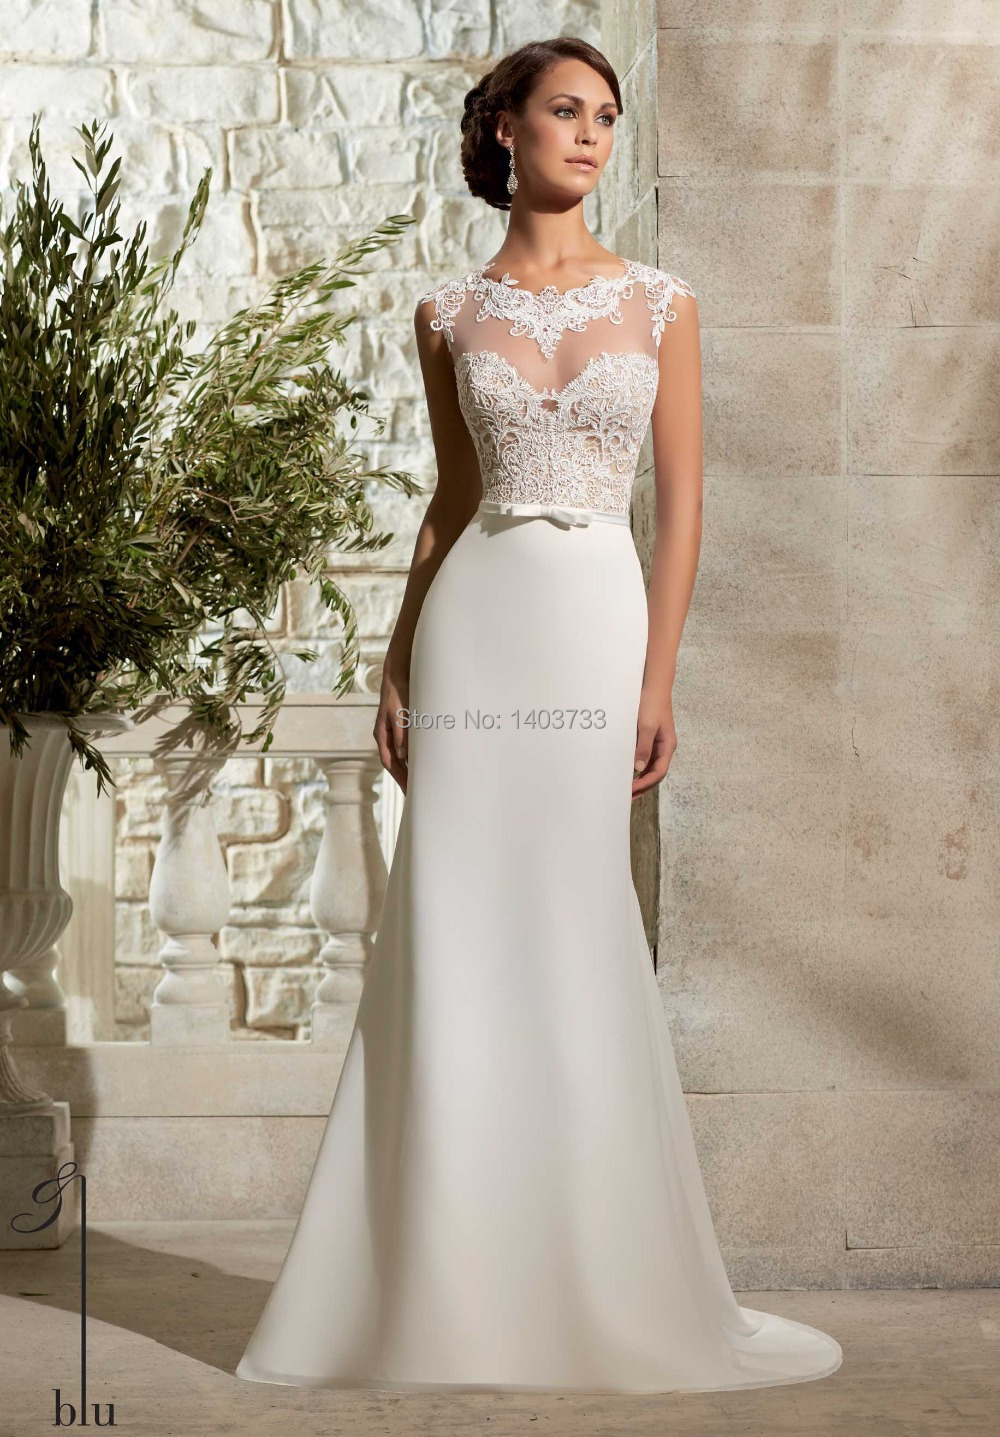 lace high neck wedding dresses high neck wedding dress Lace high neck wedding dresses